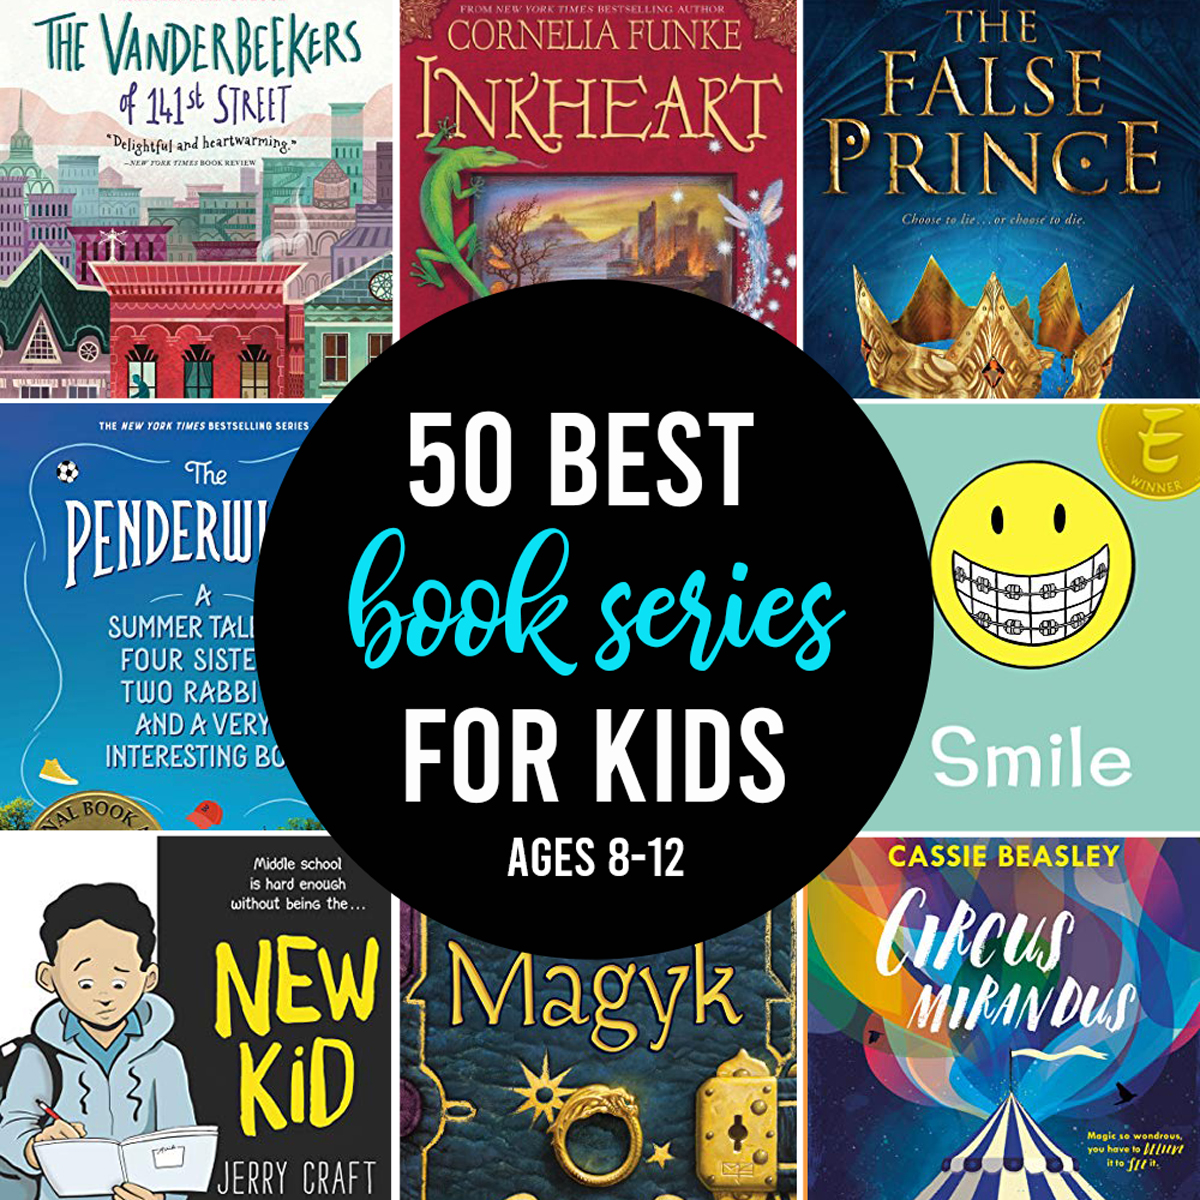 12 best book series for kids ages 12 12 summer reading list